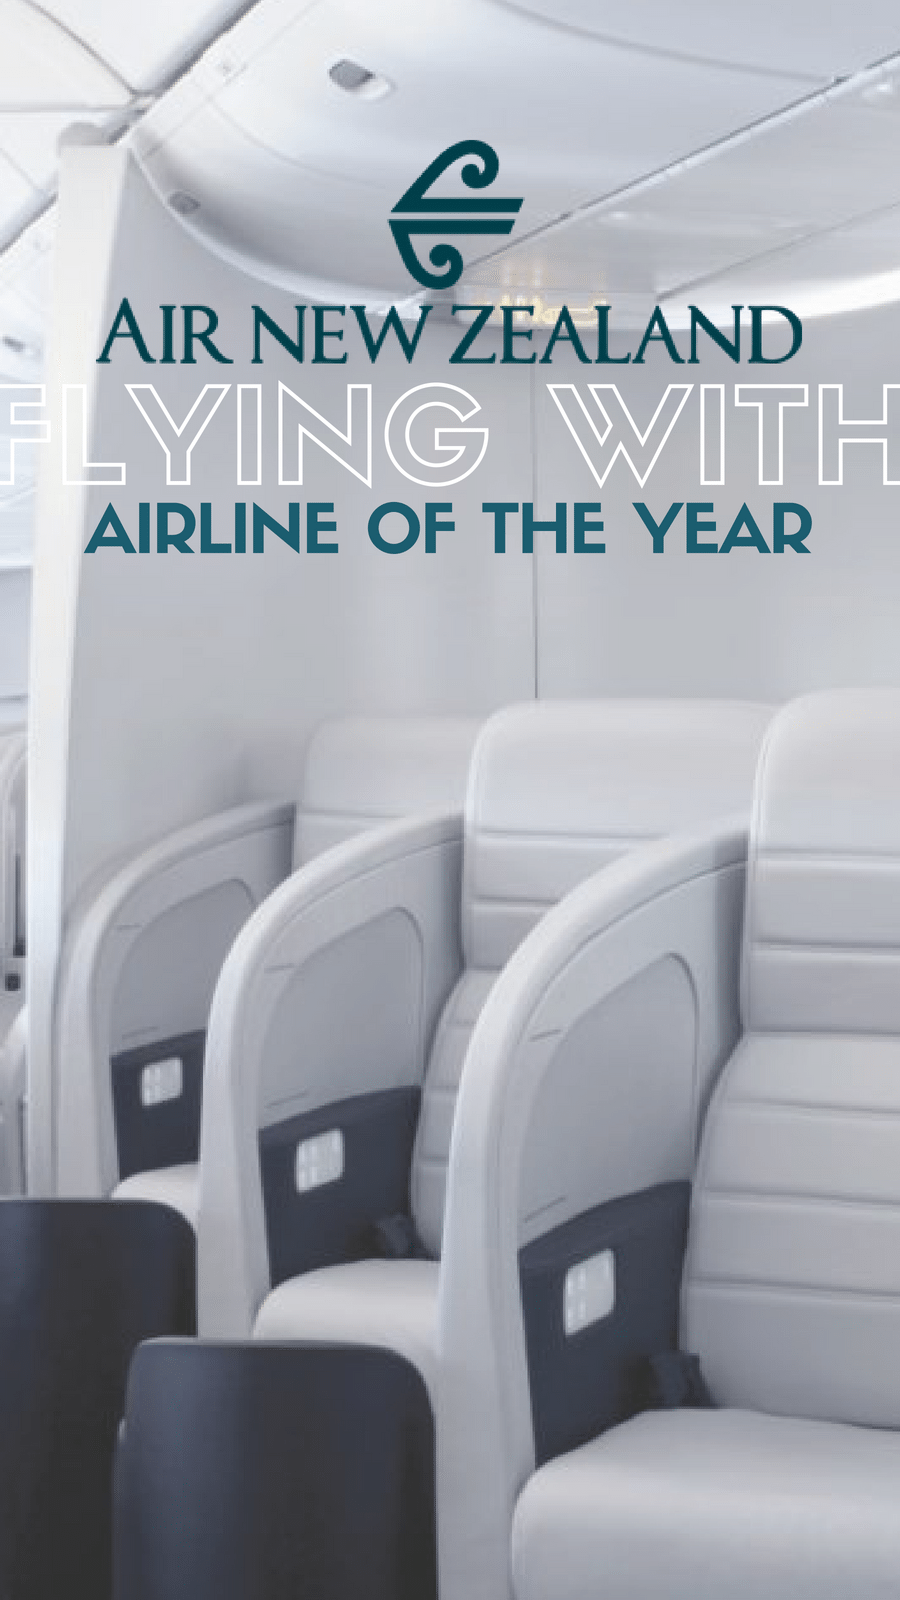 Air New Zealand - Flying With Airline Of The Year 2018 - Flunking Monkey